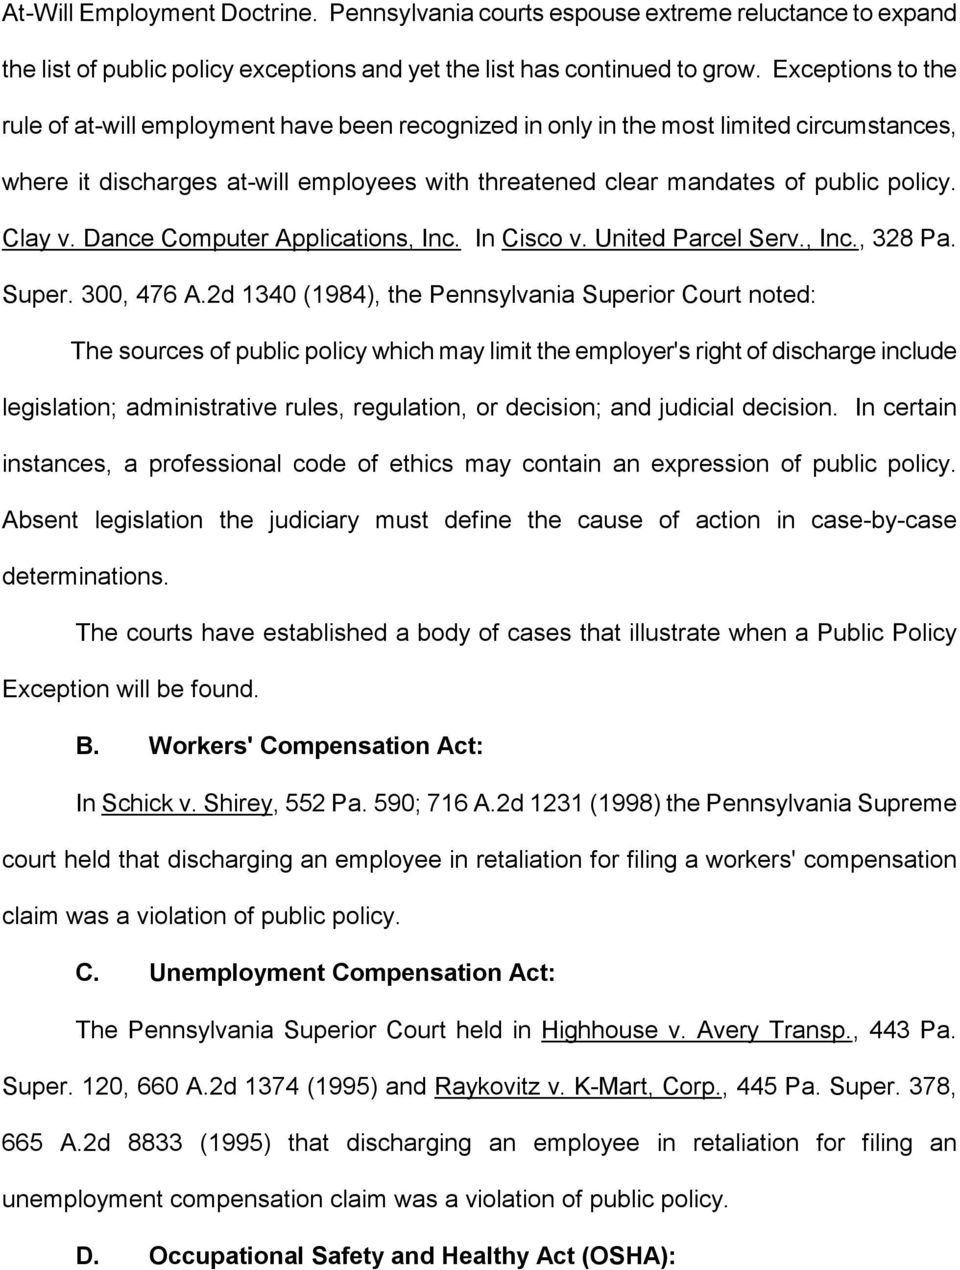 Clay v. Dance Computer Applications, Inc. In Cisco v. United Parcel Serv., Inc., 328 Pa. Super. 300, 476 A.